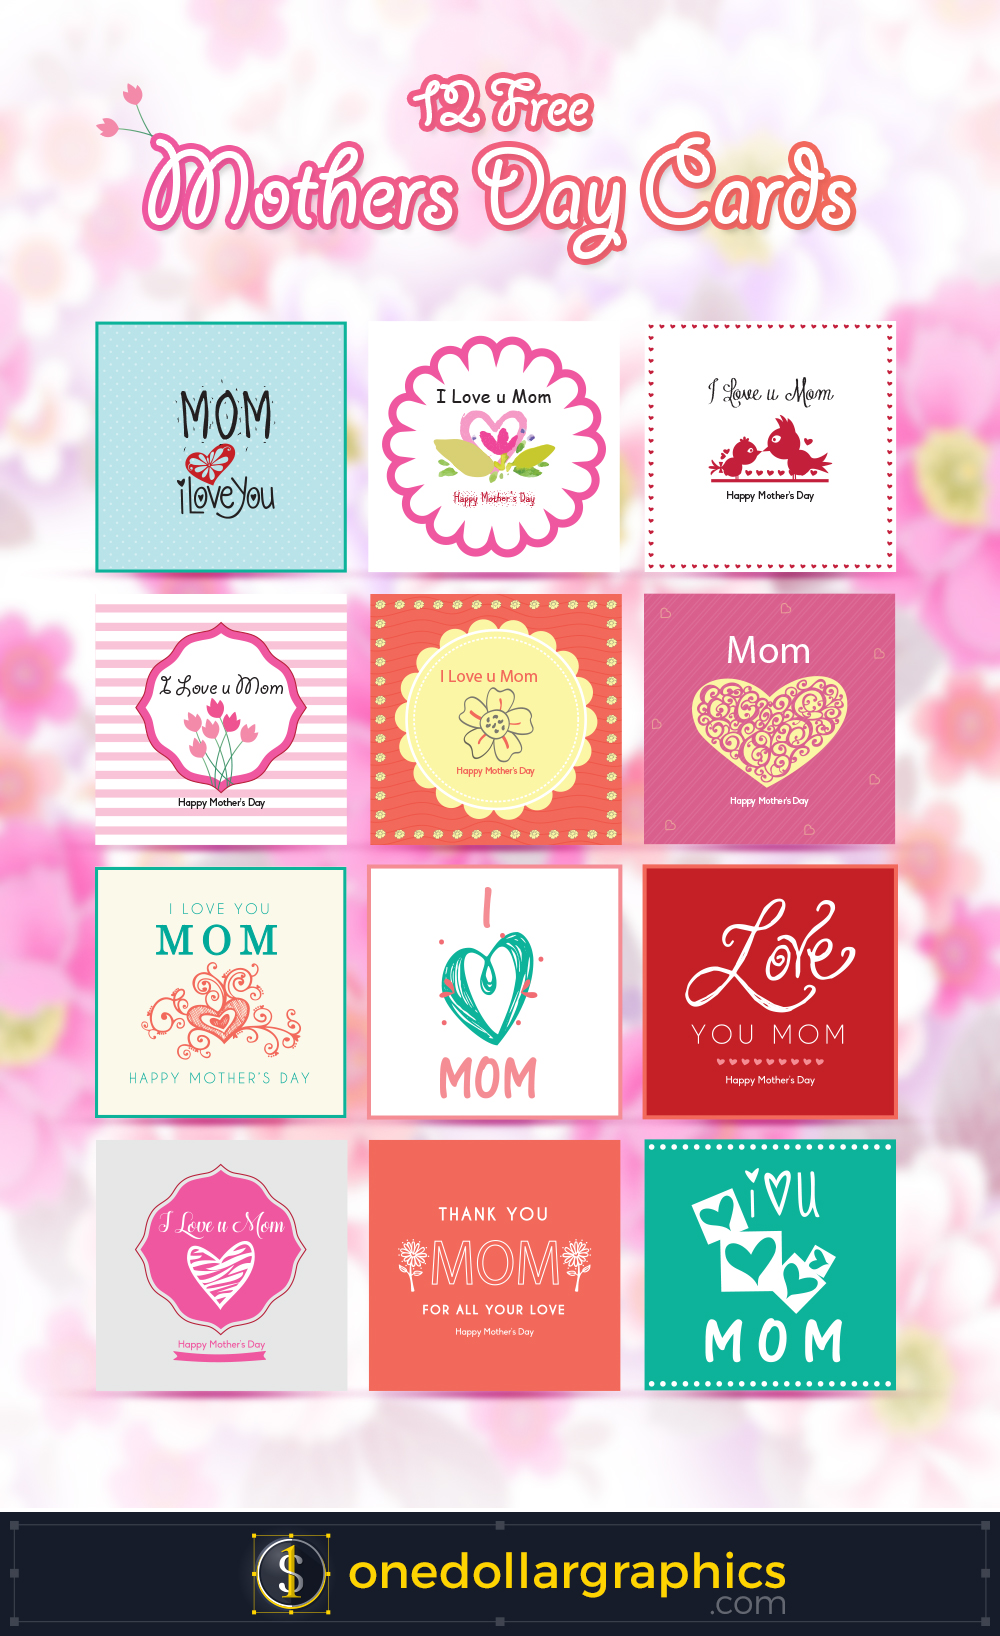 12-Free-Mothers-Day-Cards